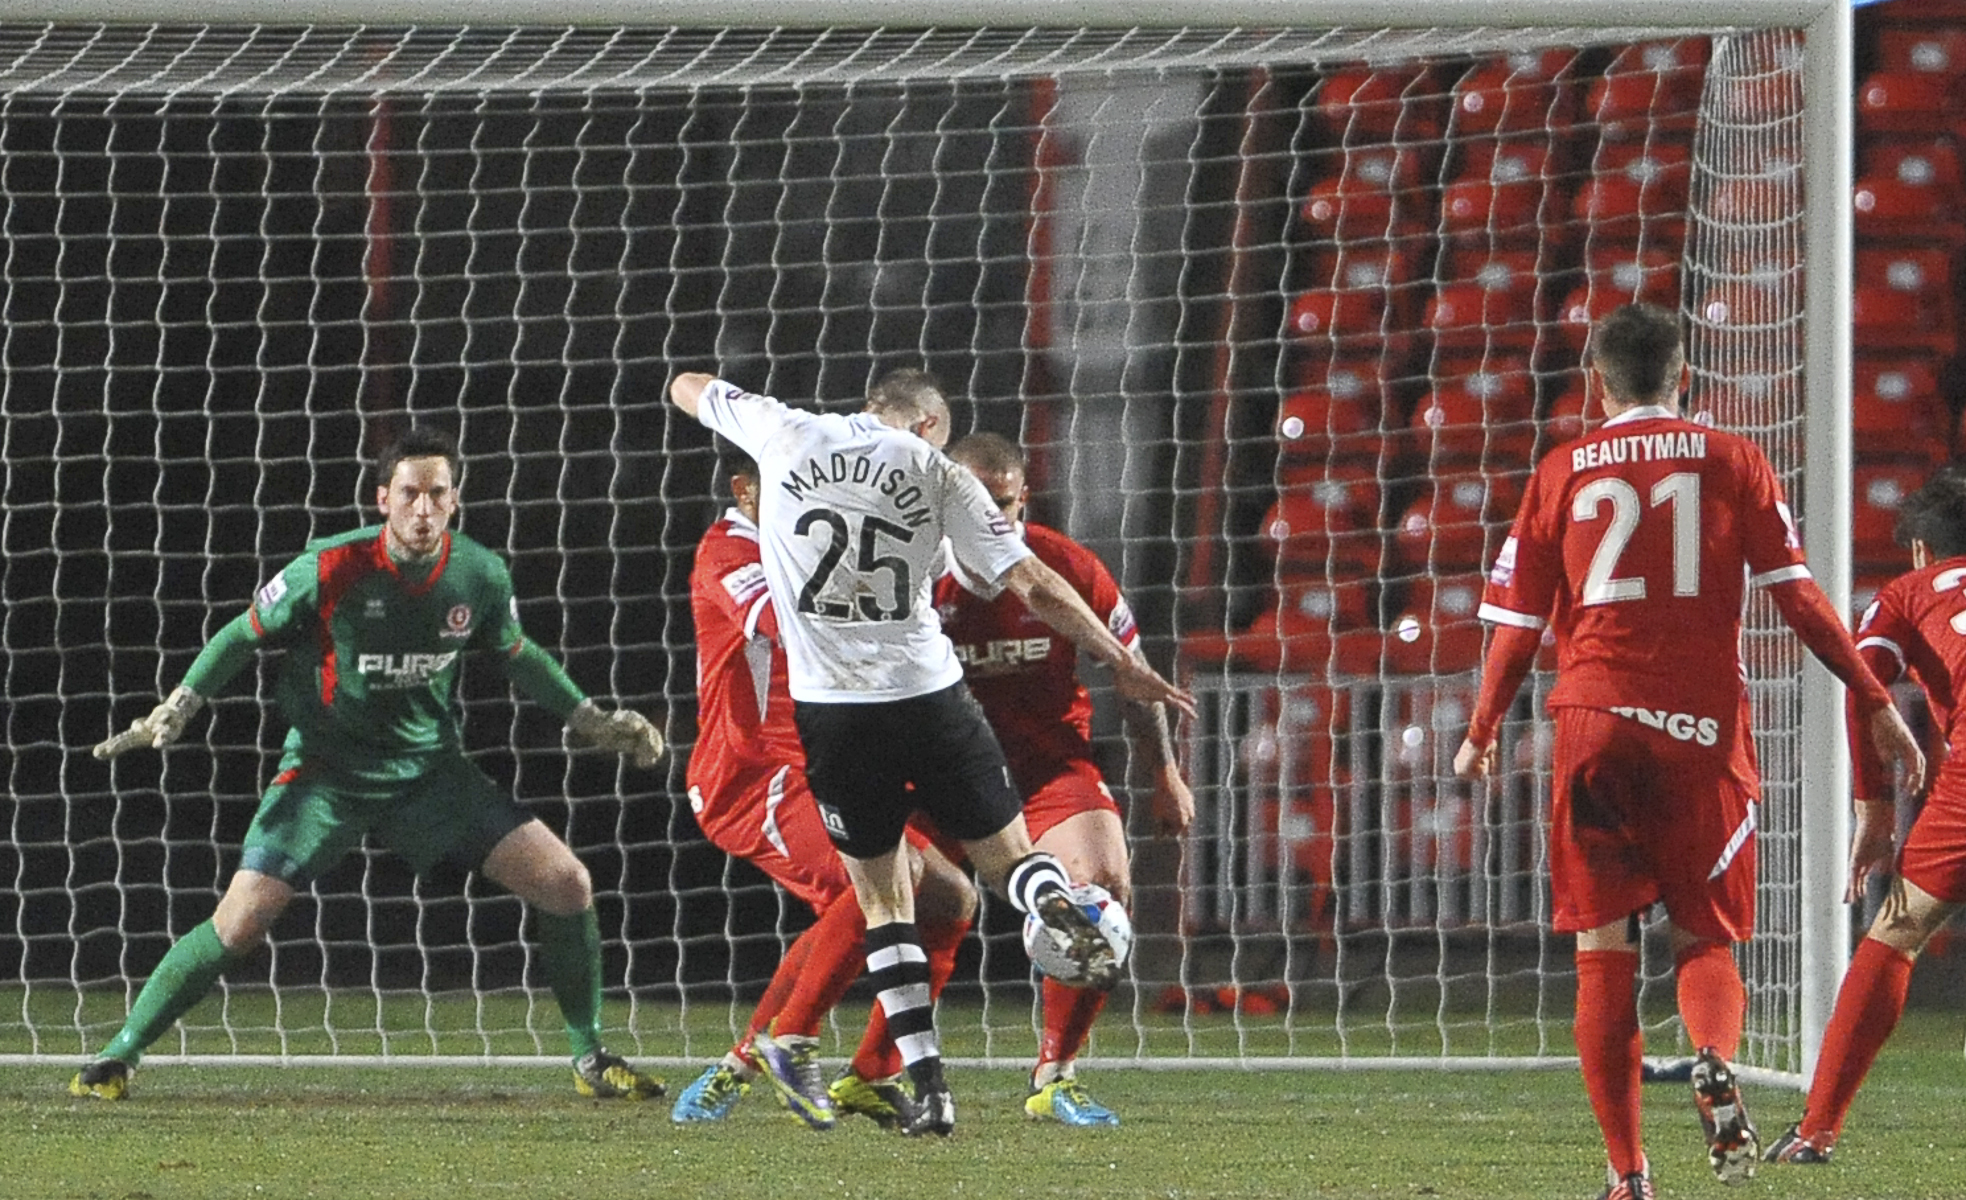 News Shopper: Gateshead's Marcus Maddison has a shot